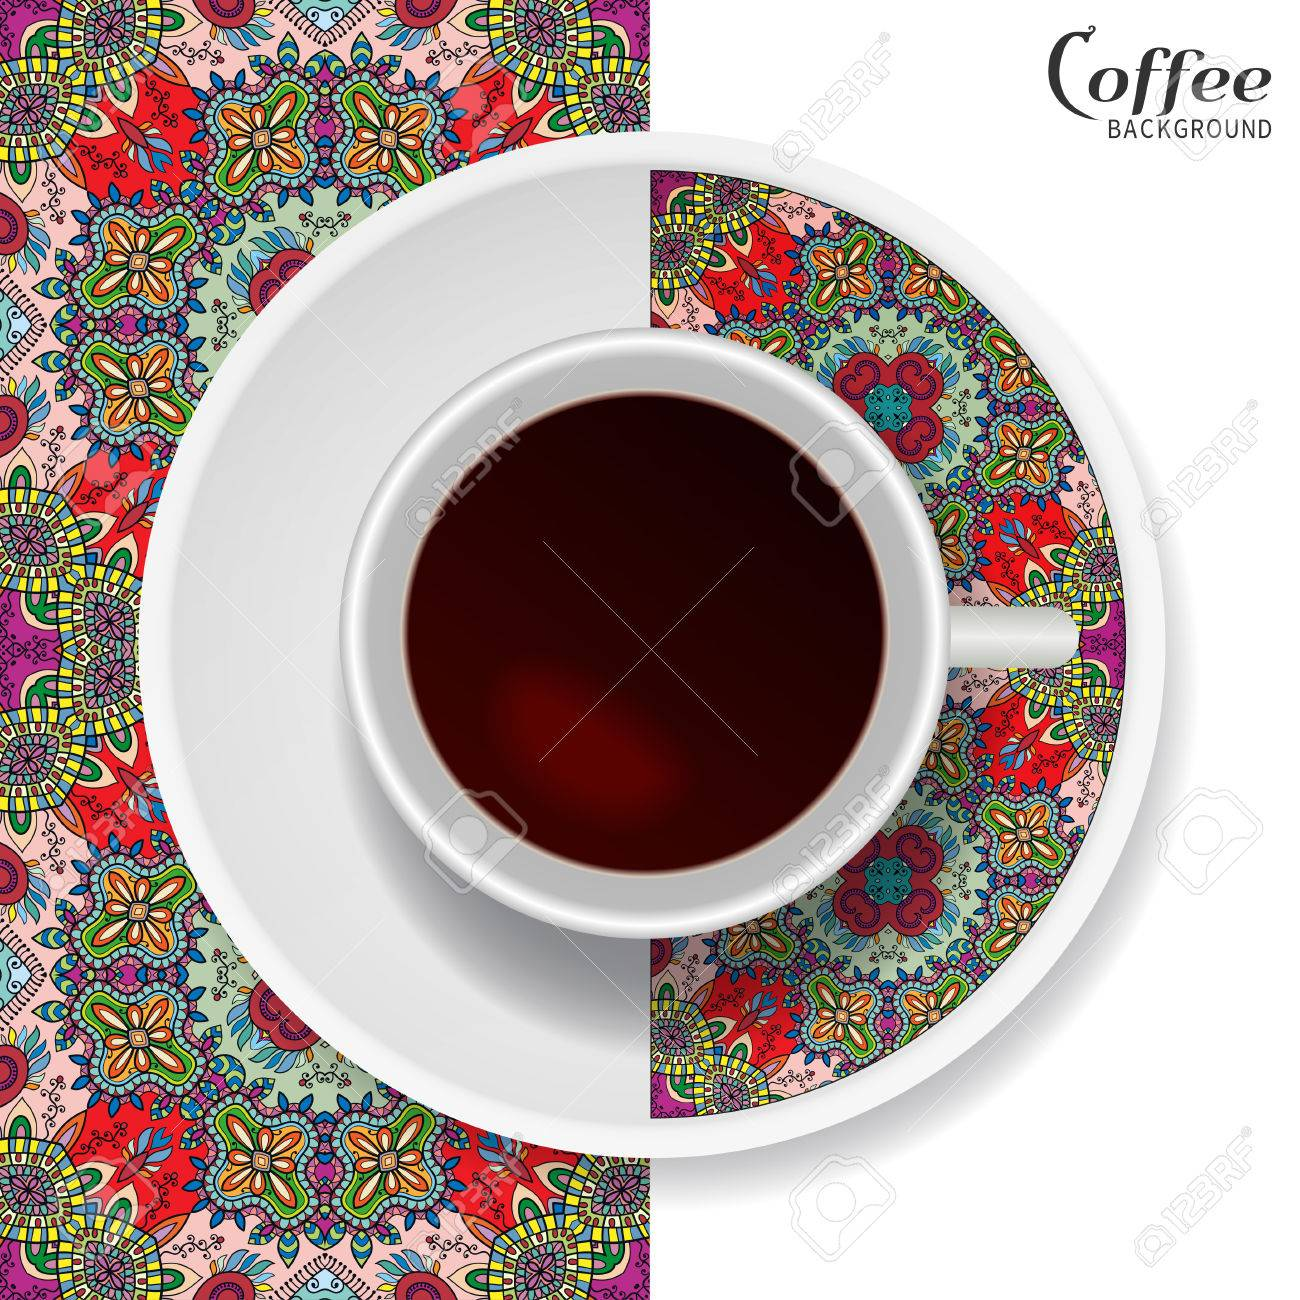 Cup of coffee with colorful ornament on a saucer and vertical seamless floral geometric pattern.  sc 1 st  123RF.com & Cup Of Coffee With Colorful Ornament On A Saucer And Vertical ...